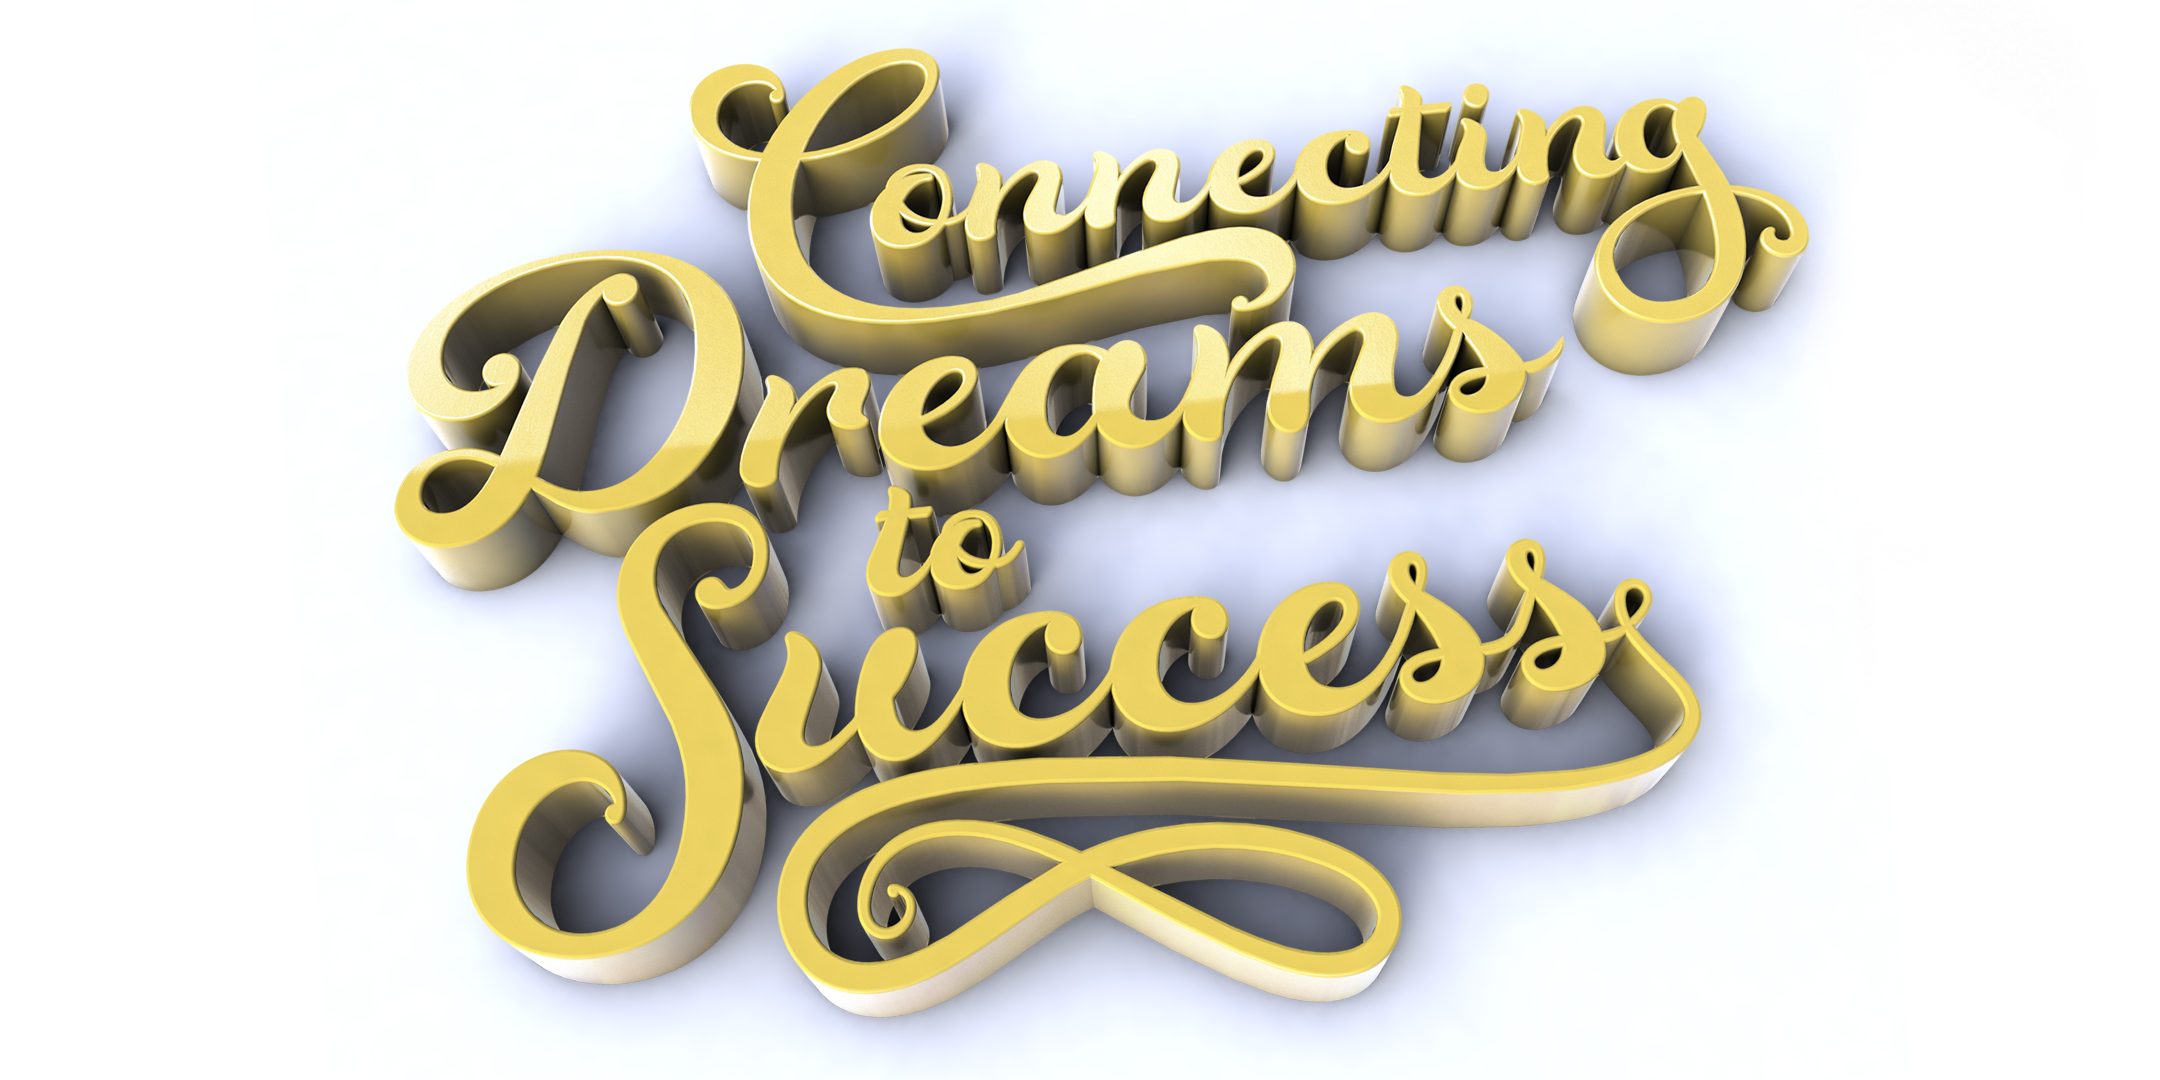 Connecting Dreams to Success